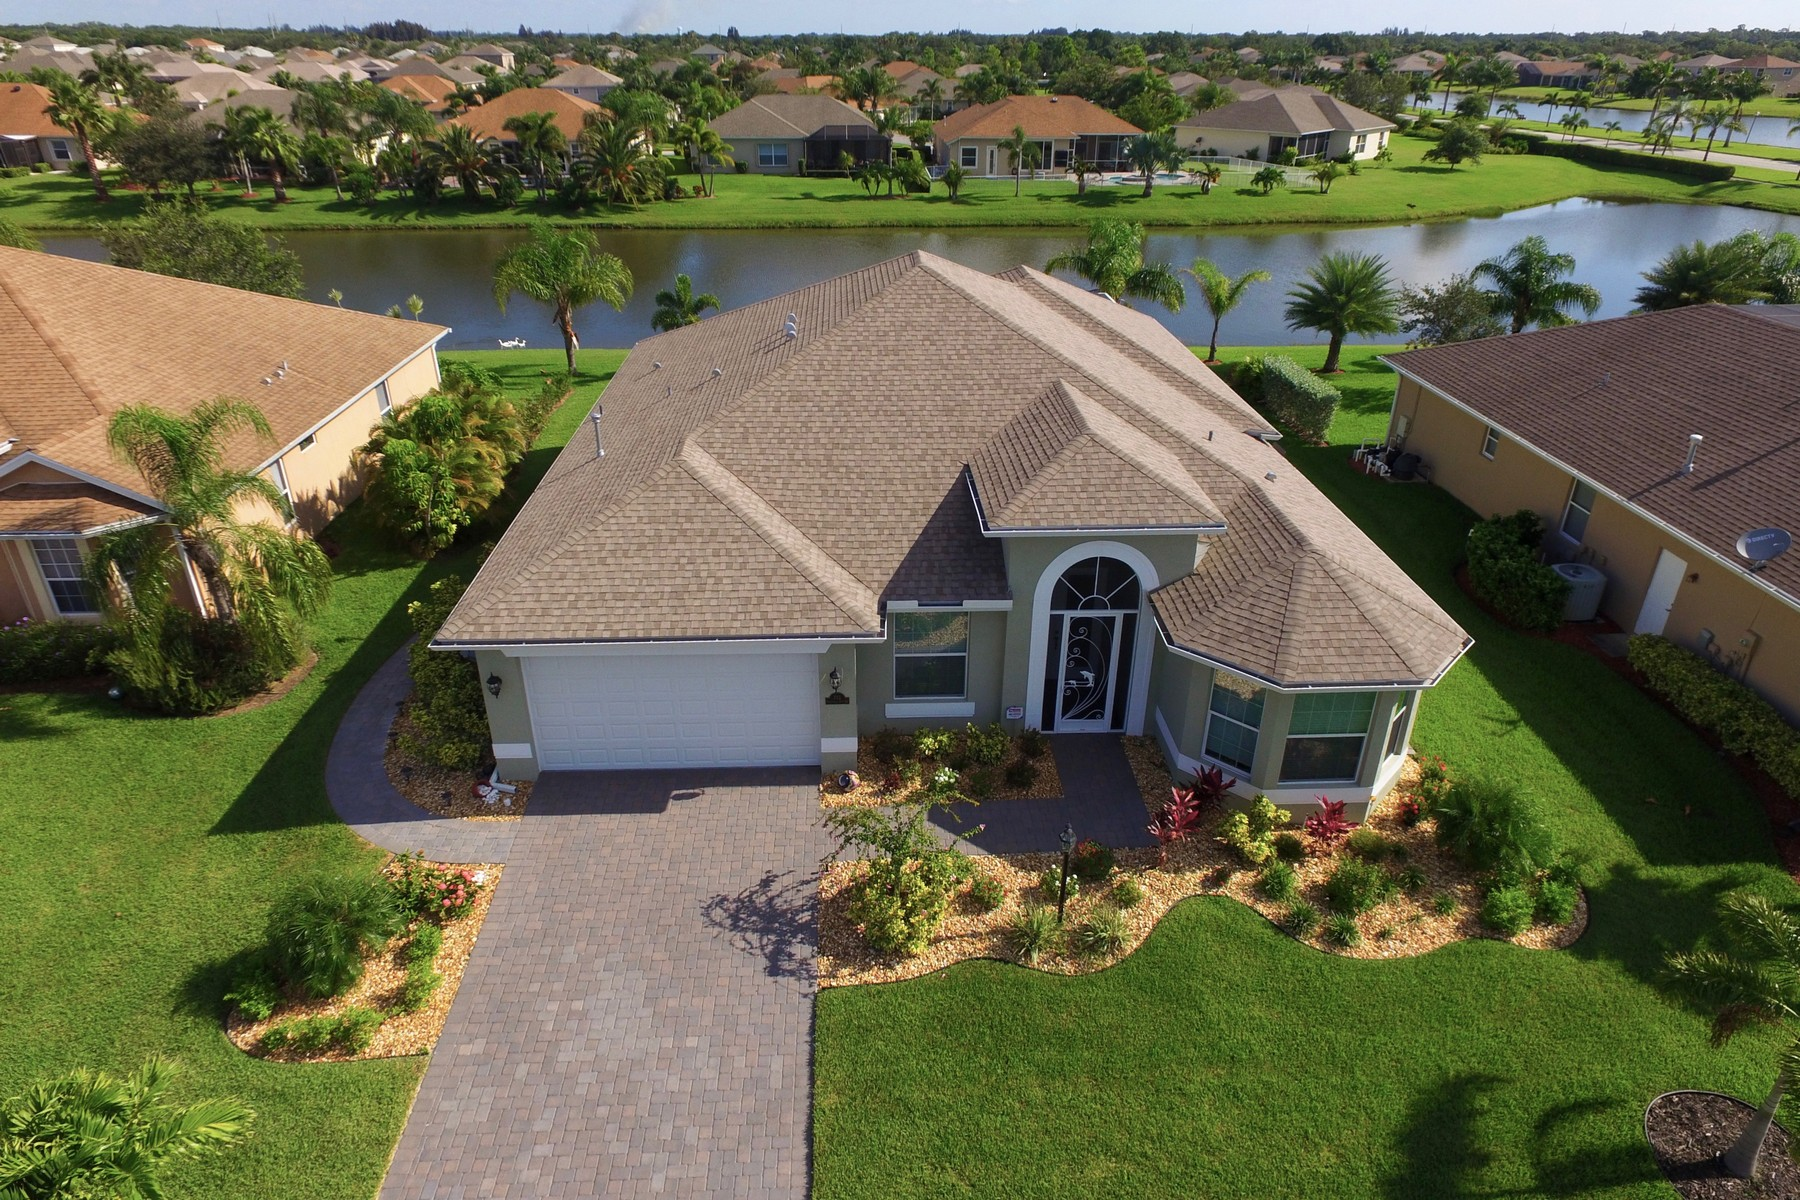 Single Family Home for Sale at Inviting Lakefront Home on Premium Homesite 783 Fortunella Circle SW Vero Beach, Florida, 32968 United States